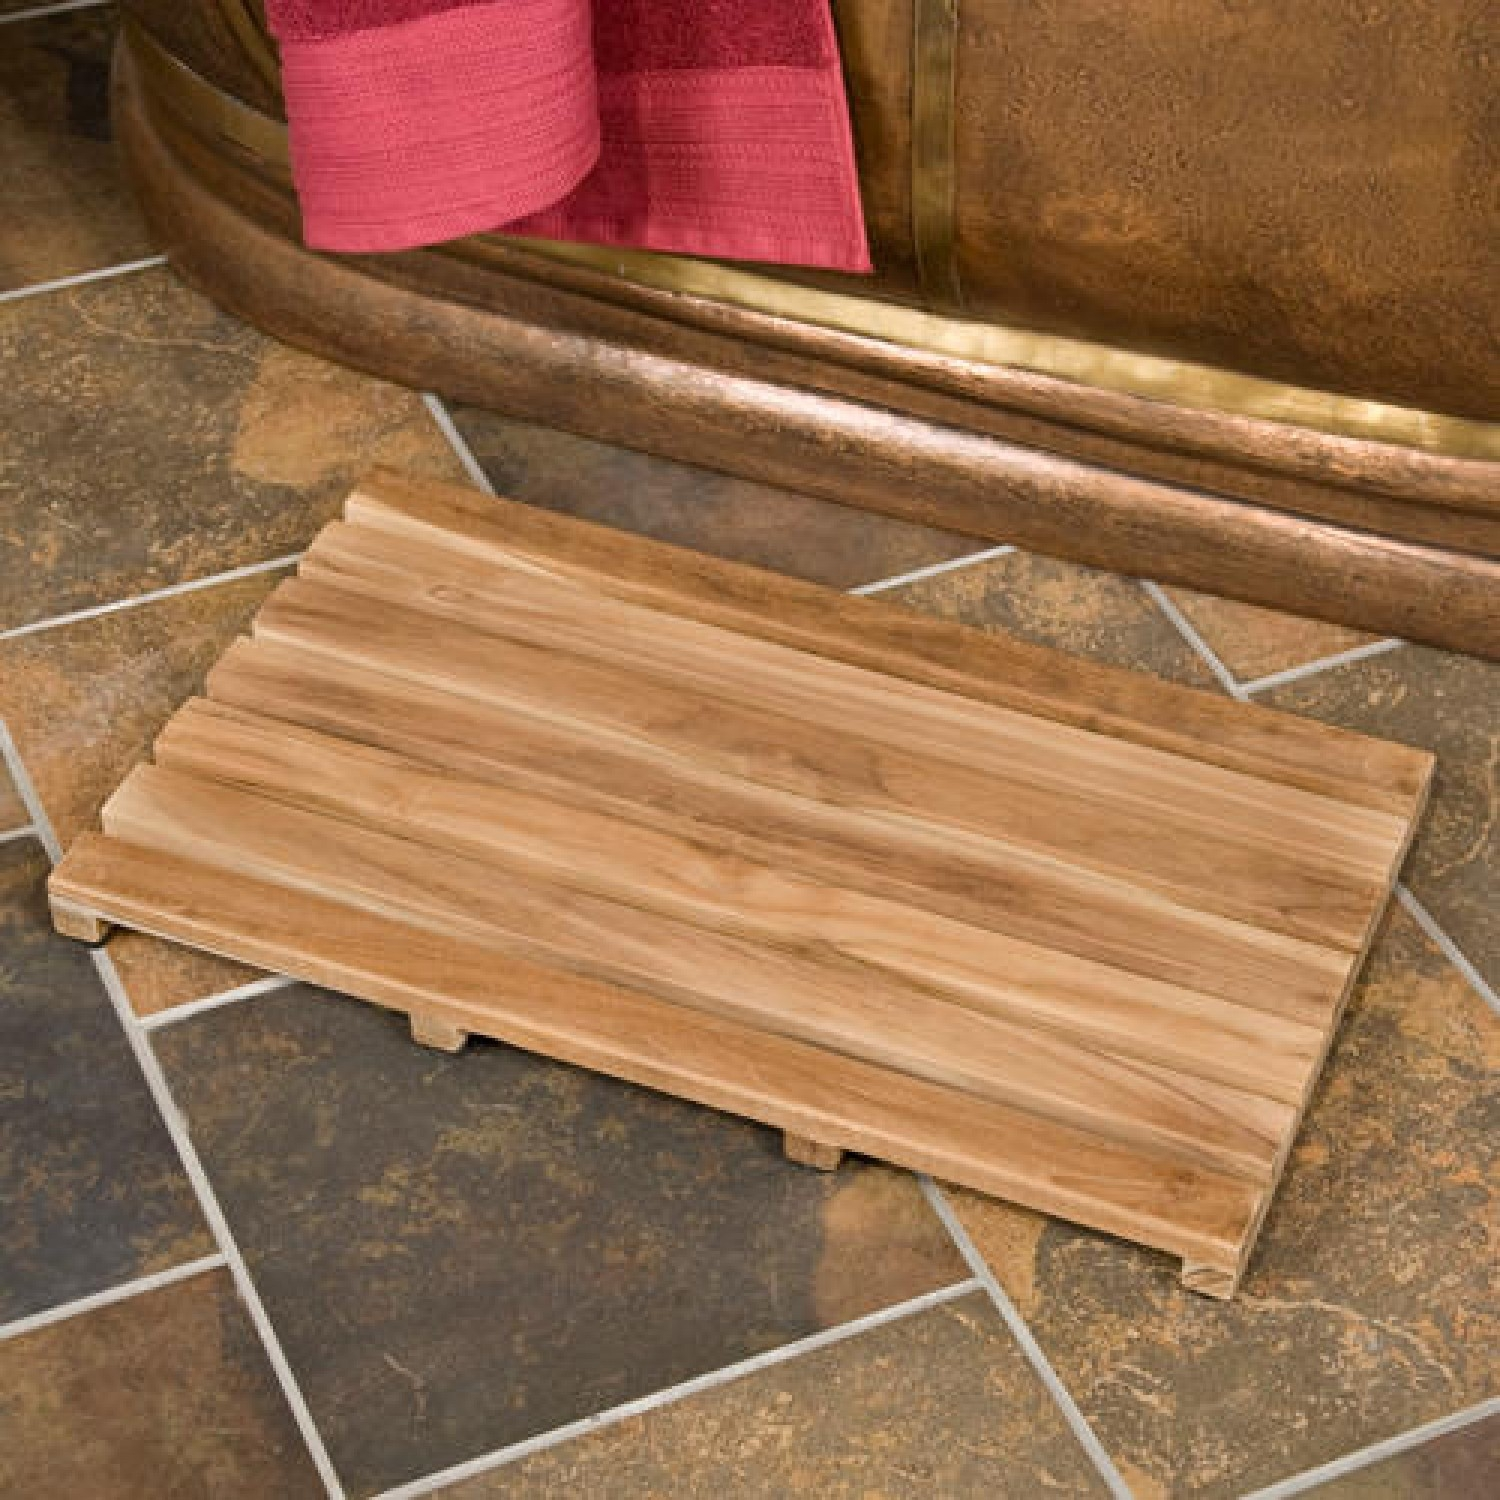 Teak Bath Mat Inside Shower